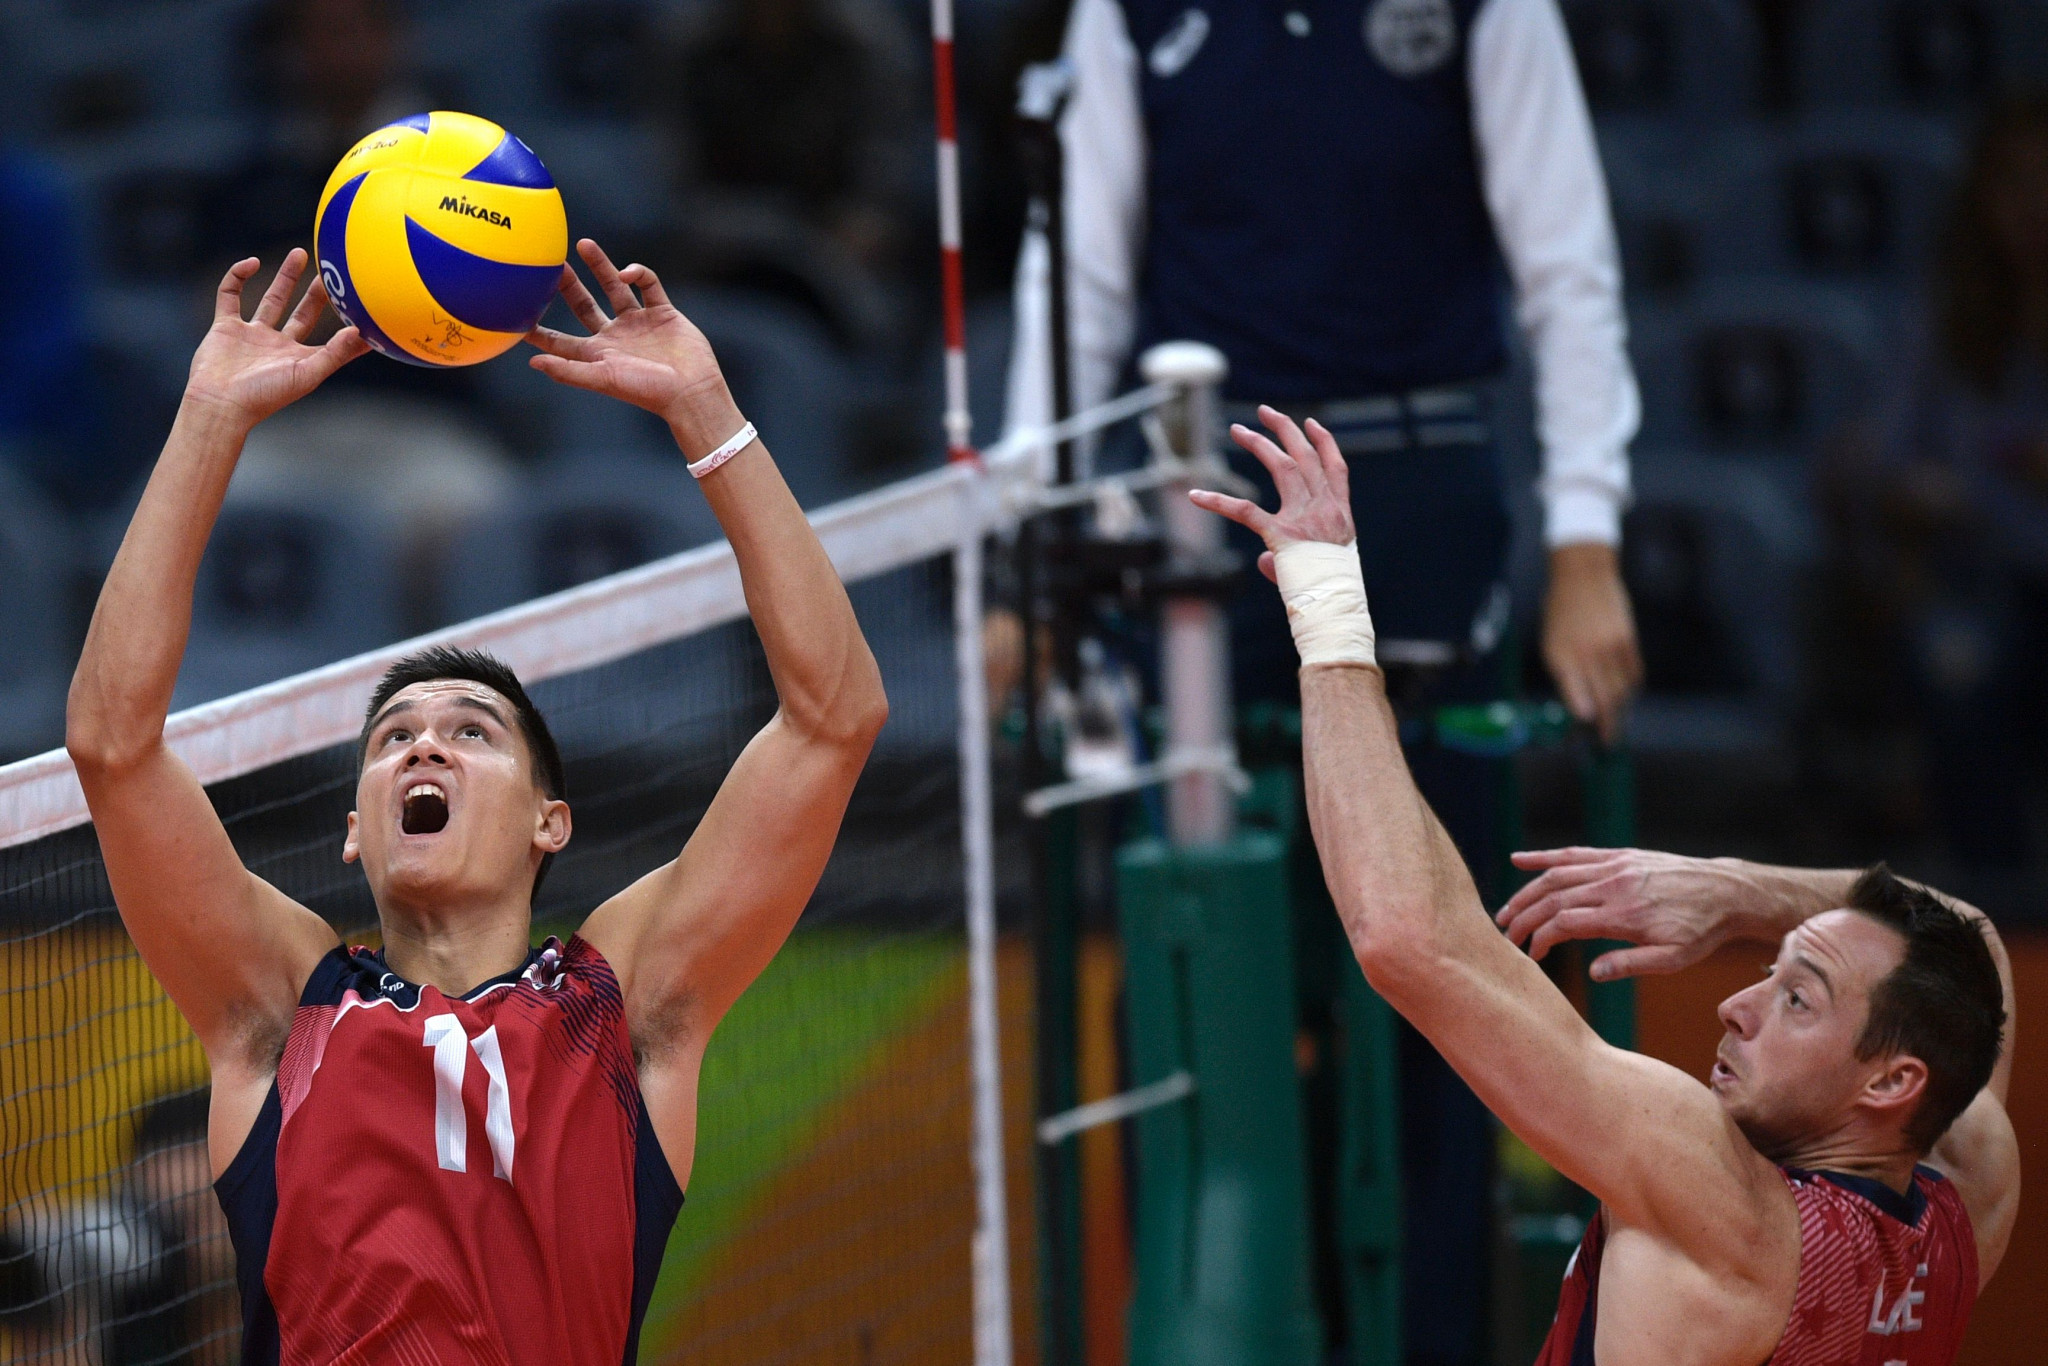 Volleyball Olympic champion David Lee, right, will make his beach debut in the qualification round ©Getty Images